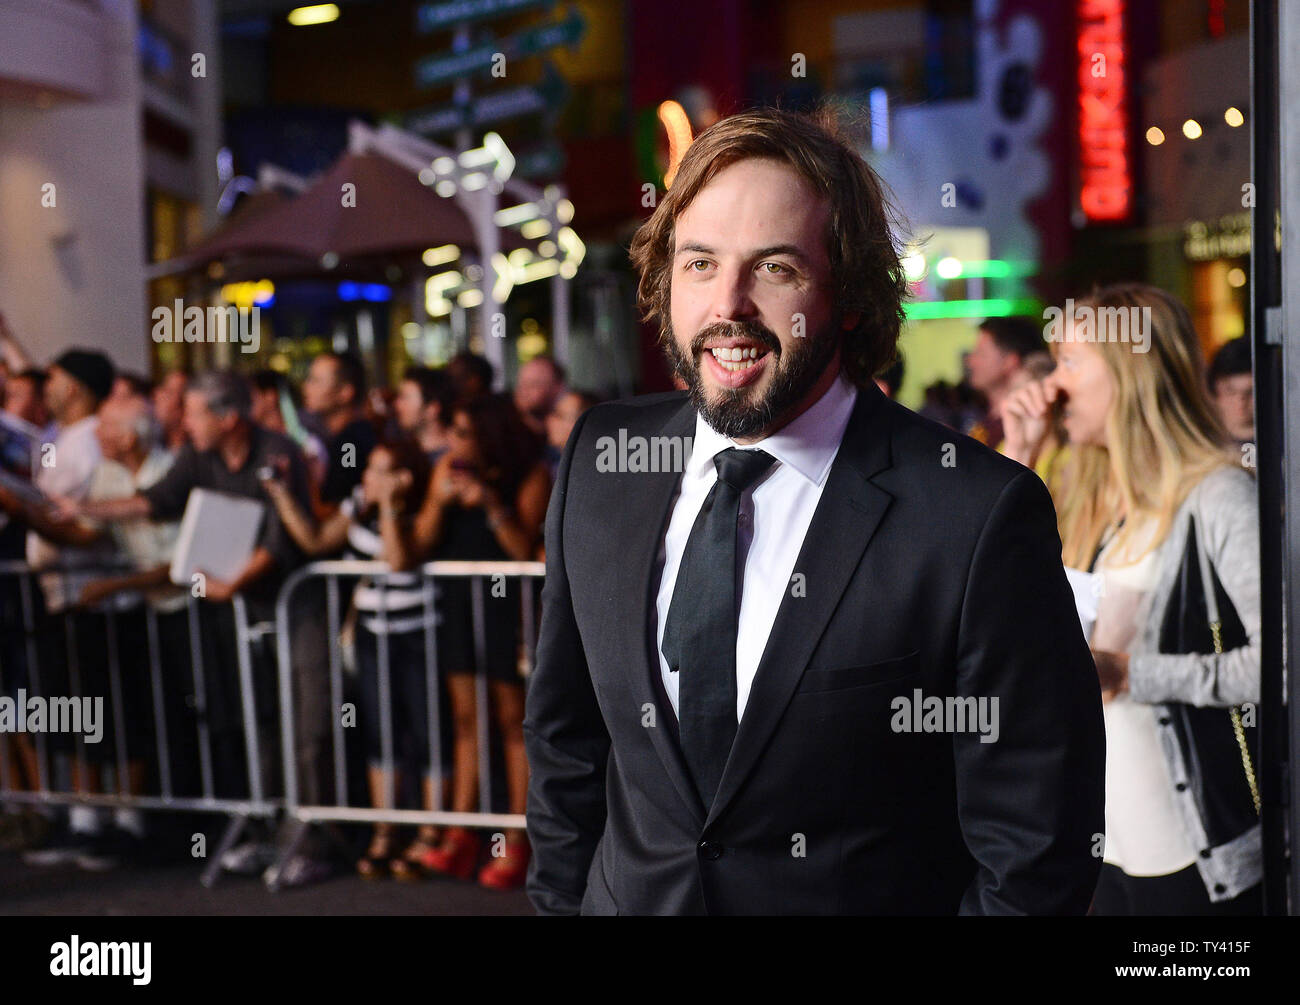 Cast Member Angus Sampson Attends The Premiere Of The Motion Picture Horror Thriller Insidious Chapter 2 At Universal Citywalk In Universal City On September 10 2013 The Haunted Lambert Family Seeks To